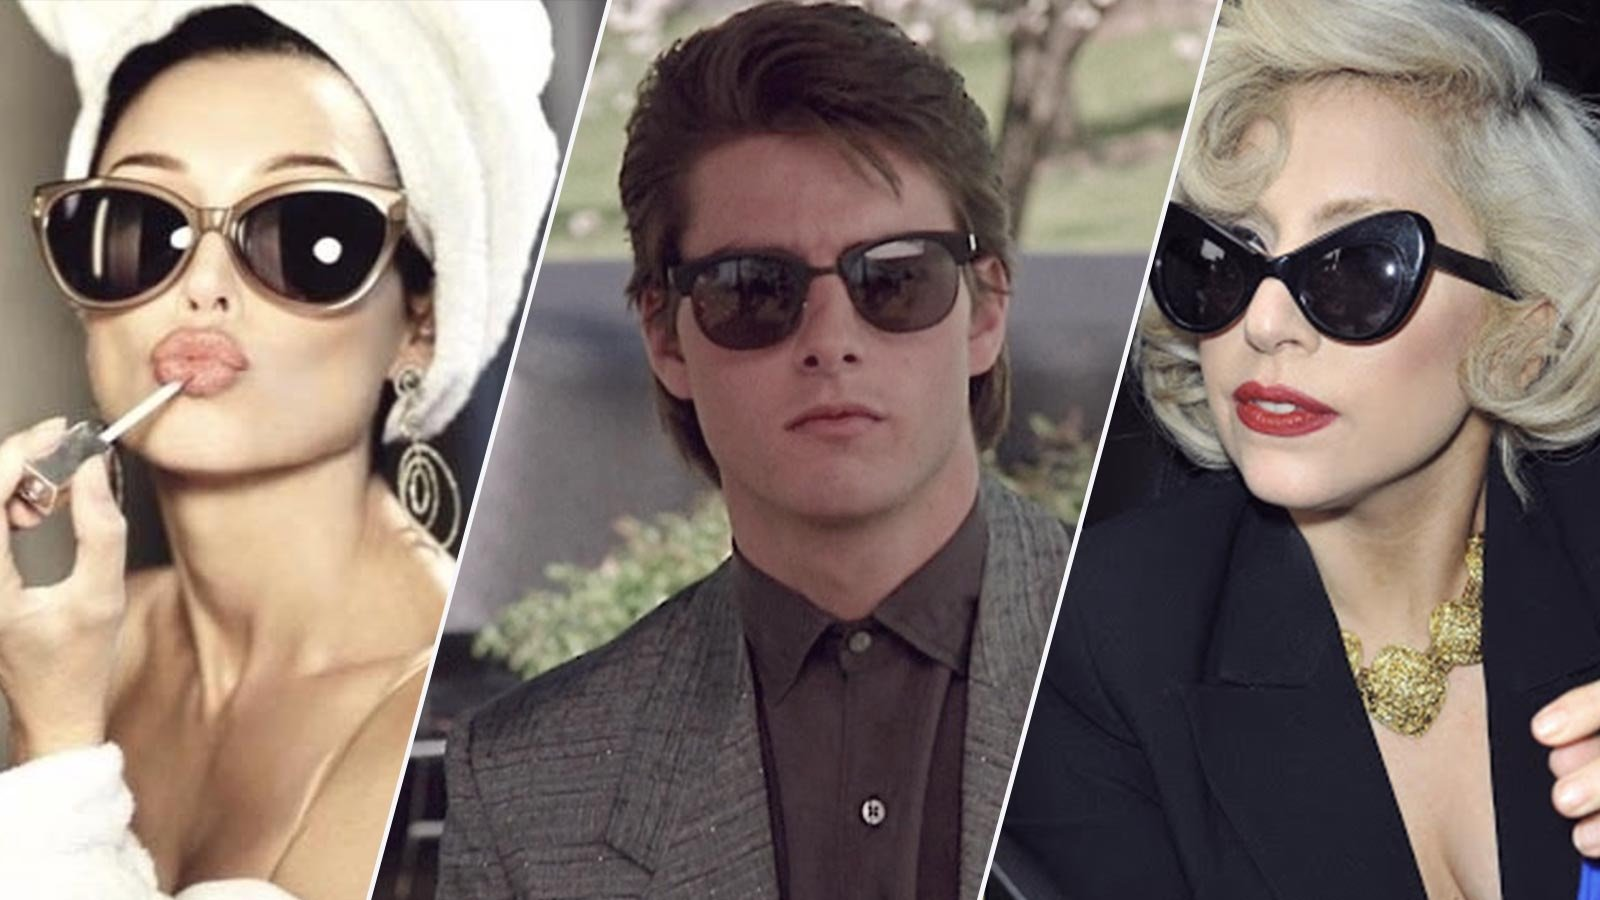 Let 80s sunglasses styles help you express yourself better